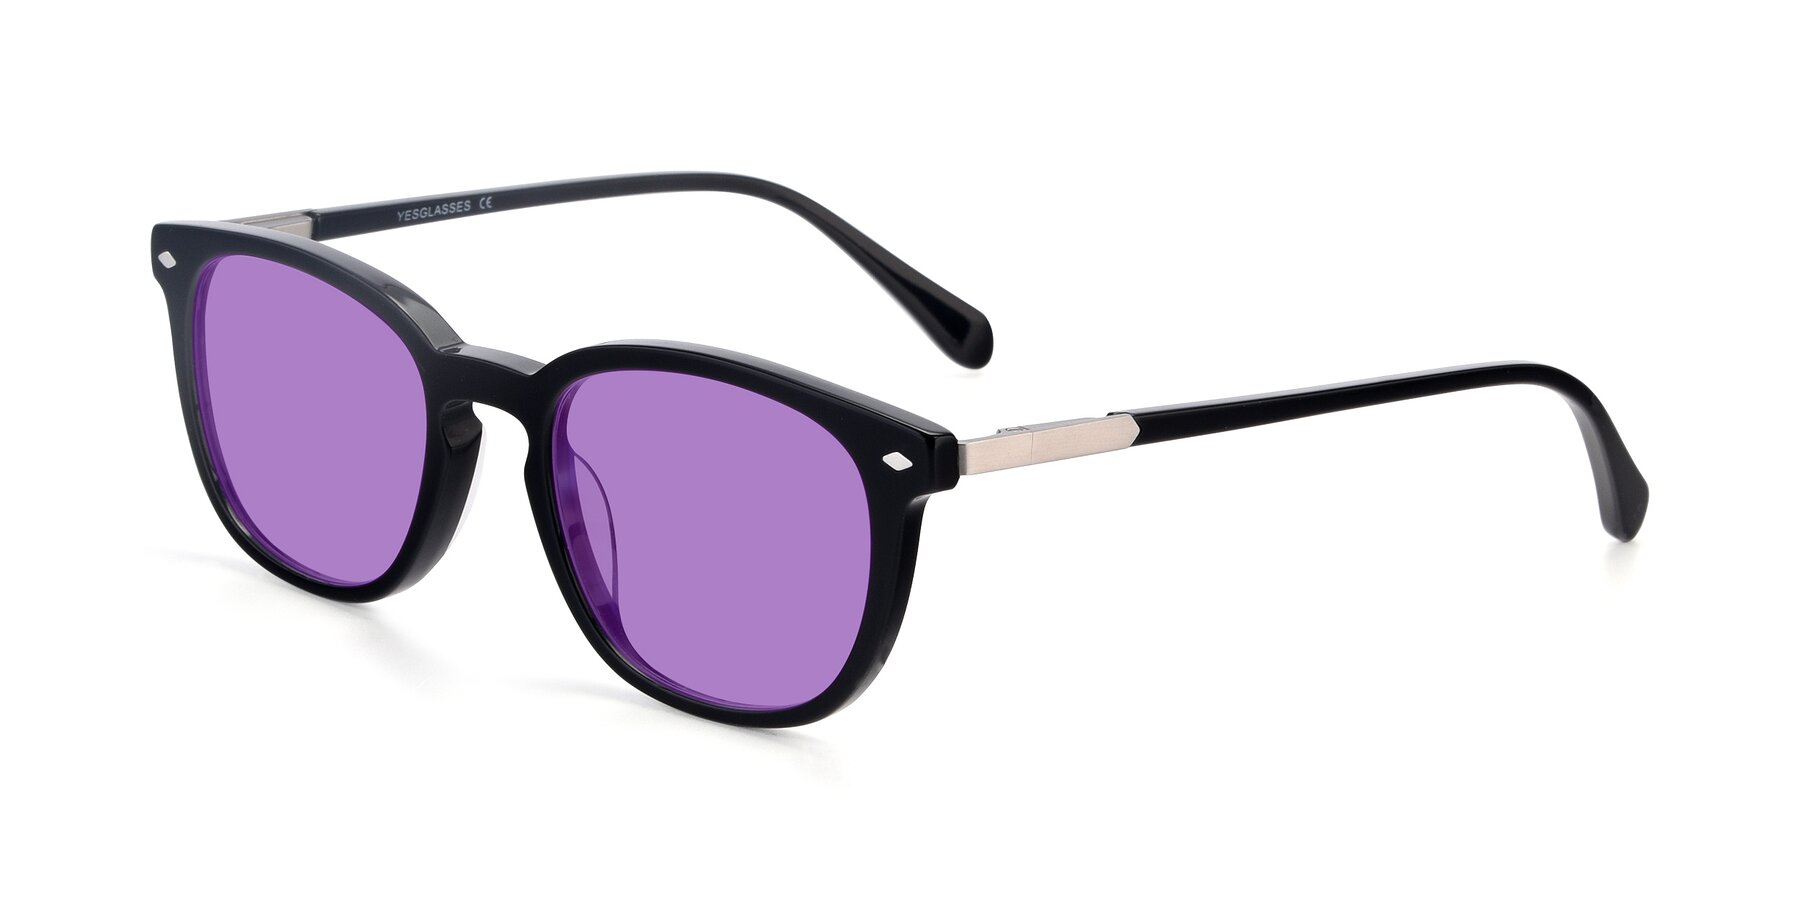 Angle of 17578 in Black with Medium Purple Tinted Lenses